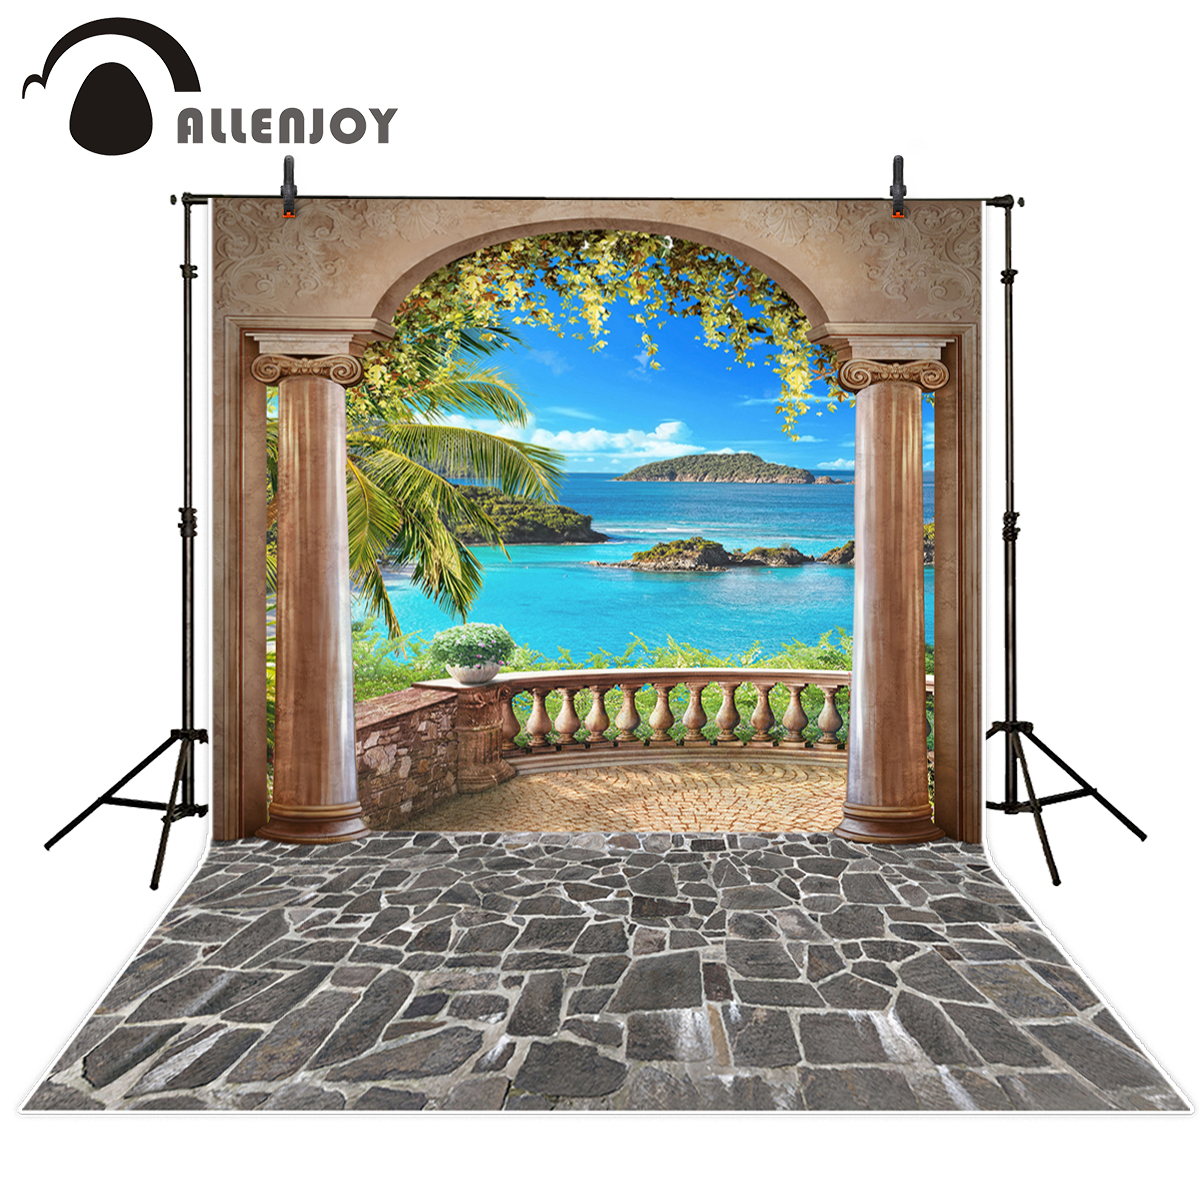 Allenjoy scenery photography background balcony island sea stone photographer Arch aesthetic scenery Photo Backdrop photographer kate photo background scenery